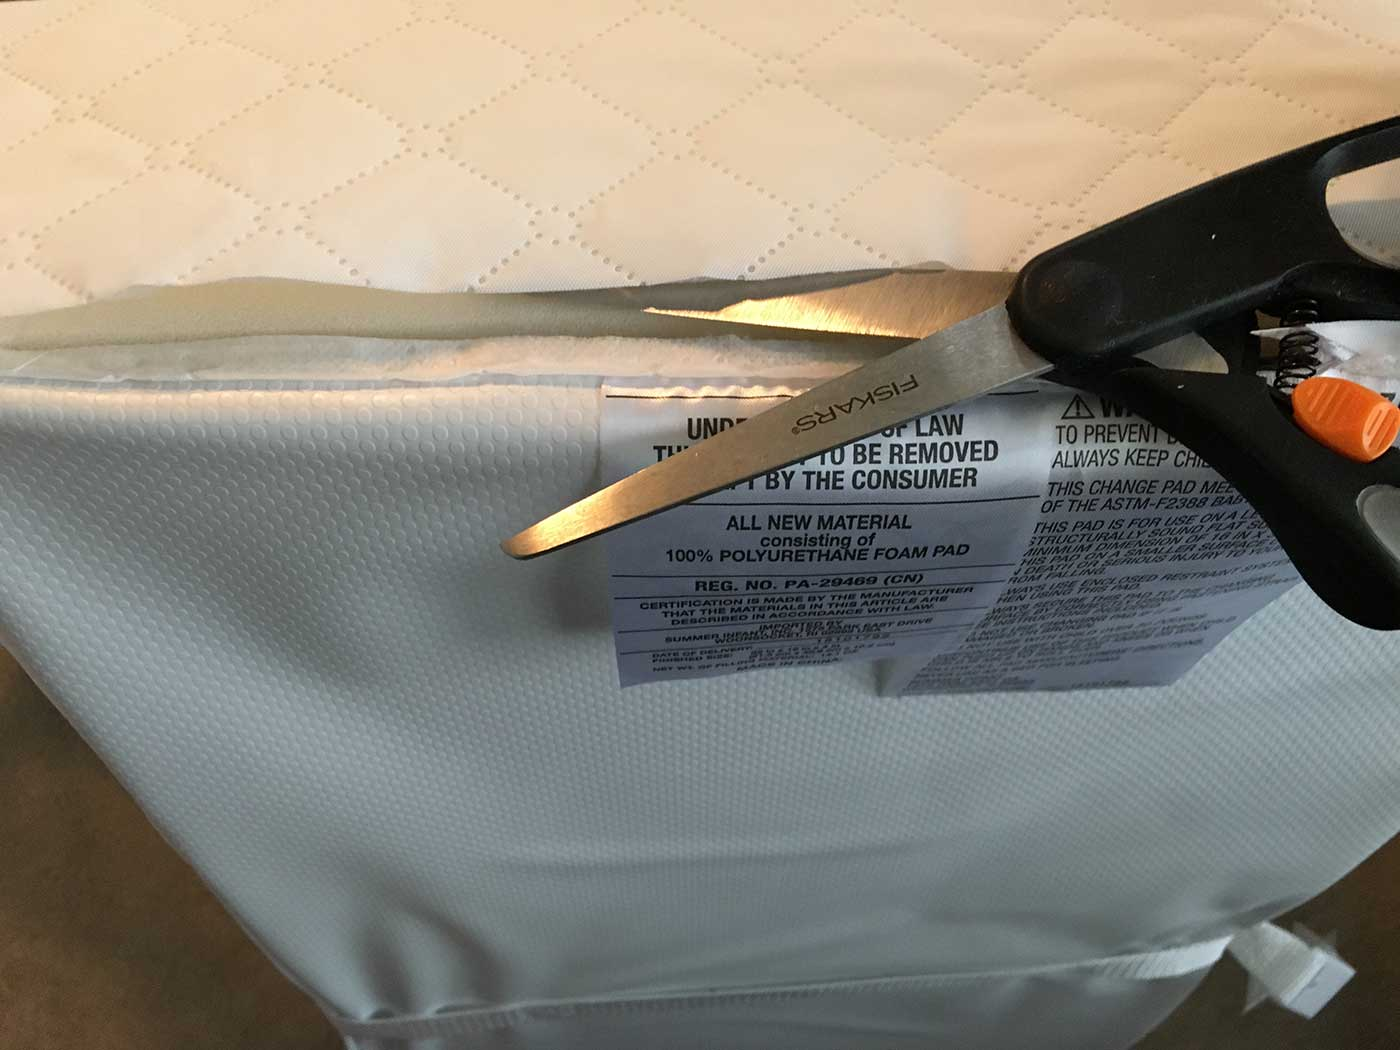 Cut the end off - Easy baby DIY project for a changing table pad for the IKEA SNIGLAR